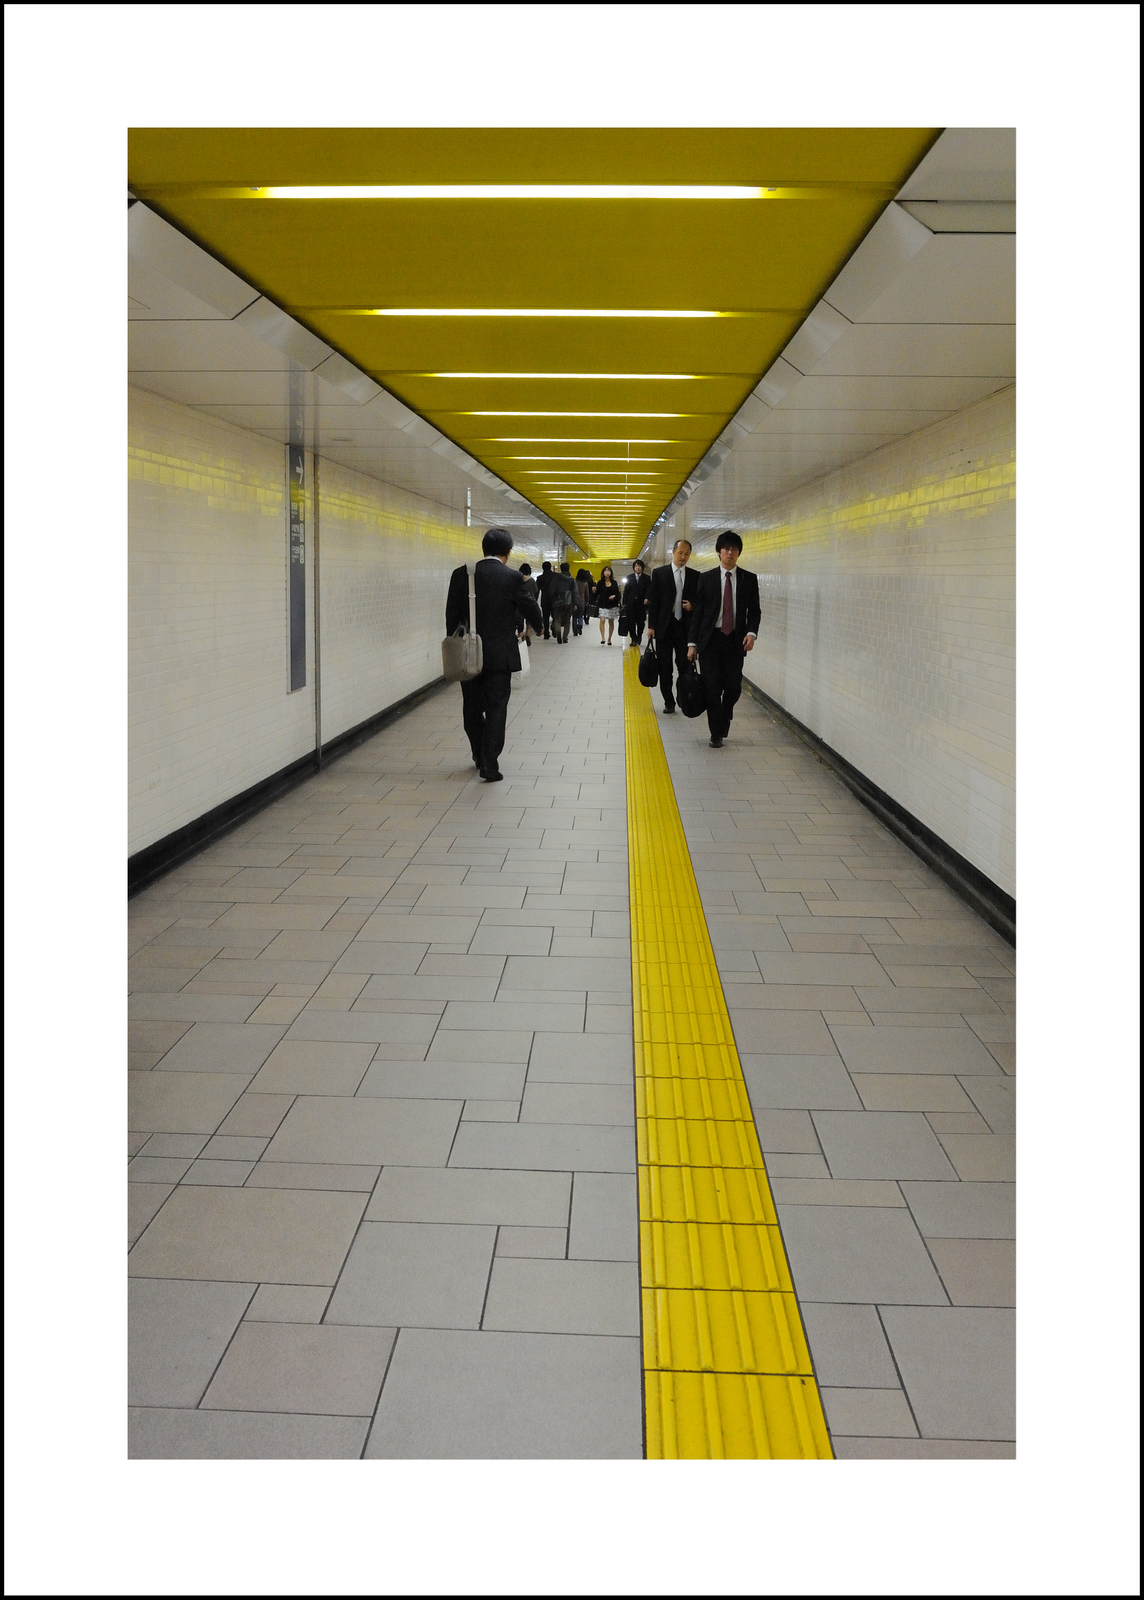 Day 330  Friday, November 26<br /> I taught in Omotesando.  I always like the colors and lines in hallways of this station.